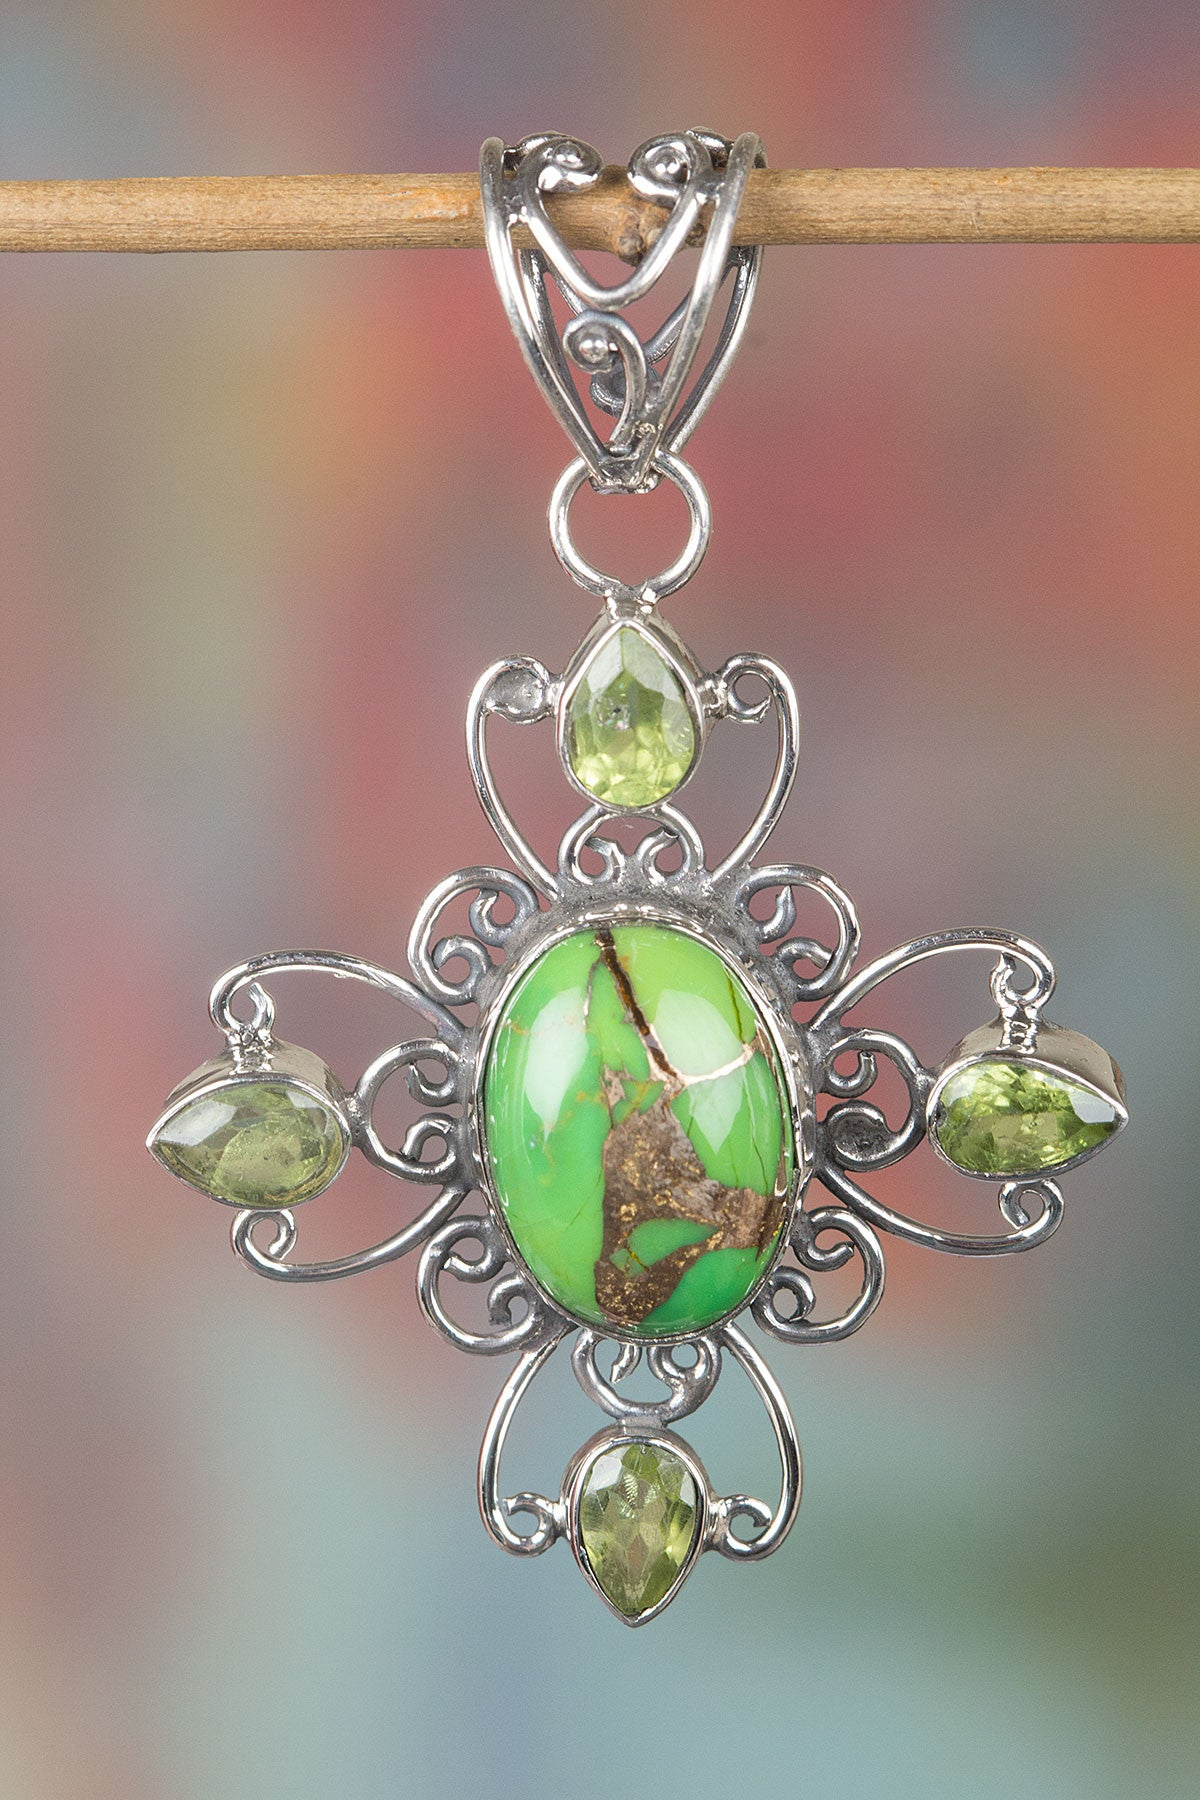 Amazing 925 Sterling Silver Green Turquoise Gemstone Pendant,